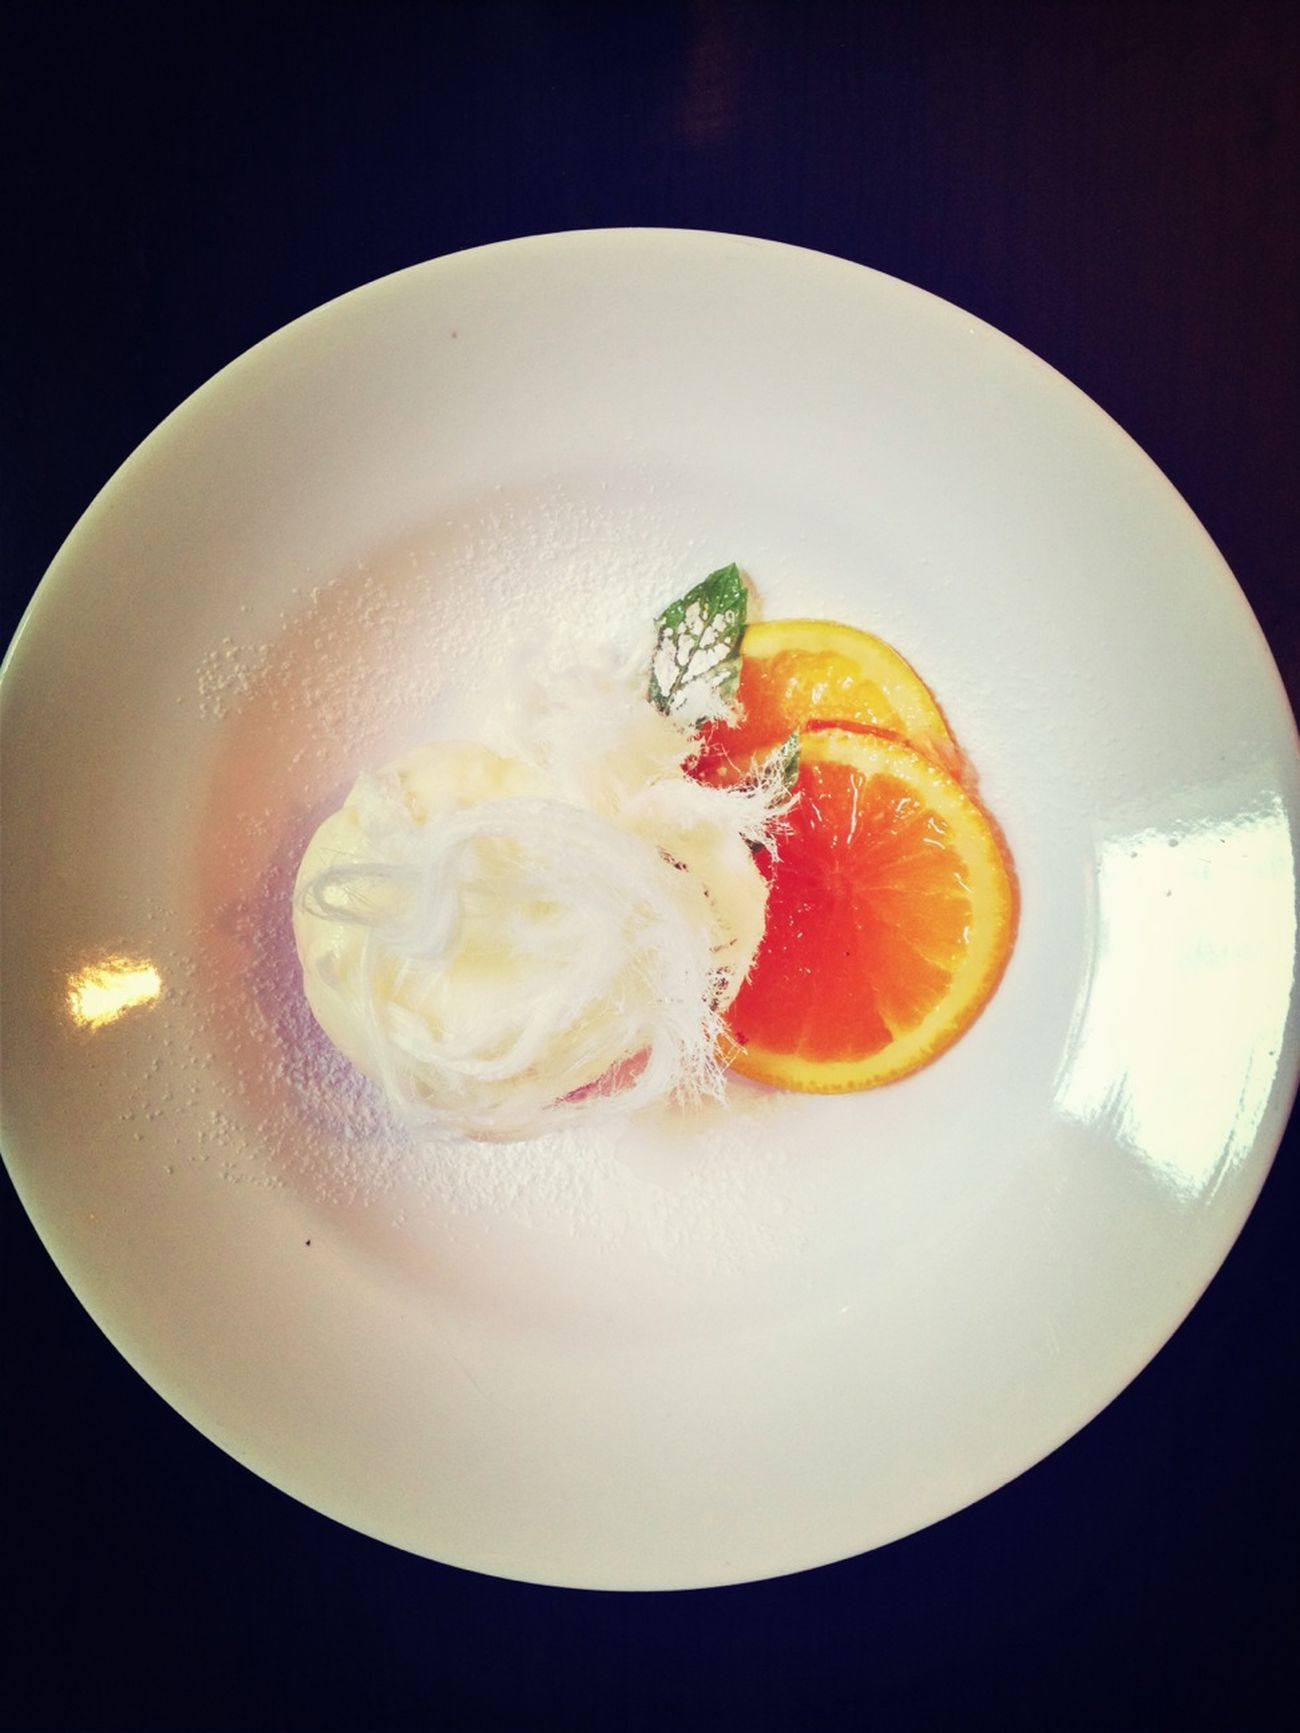 Wobbly creamy Panna Cotta served with Citrus Orange Compote